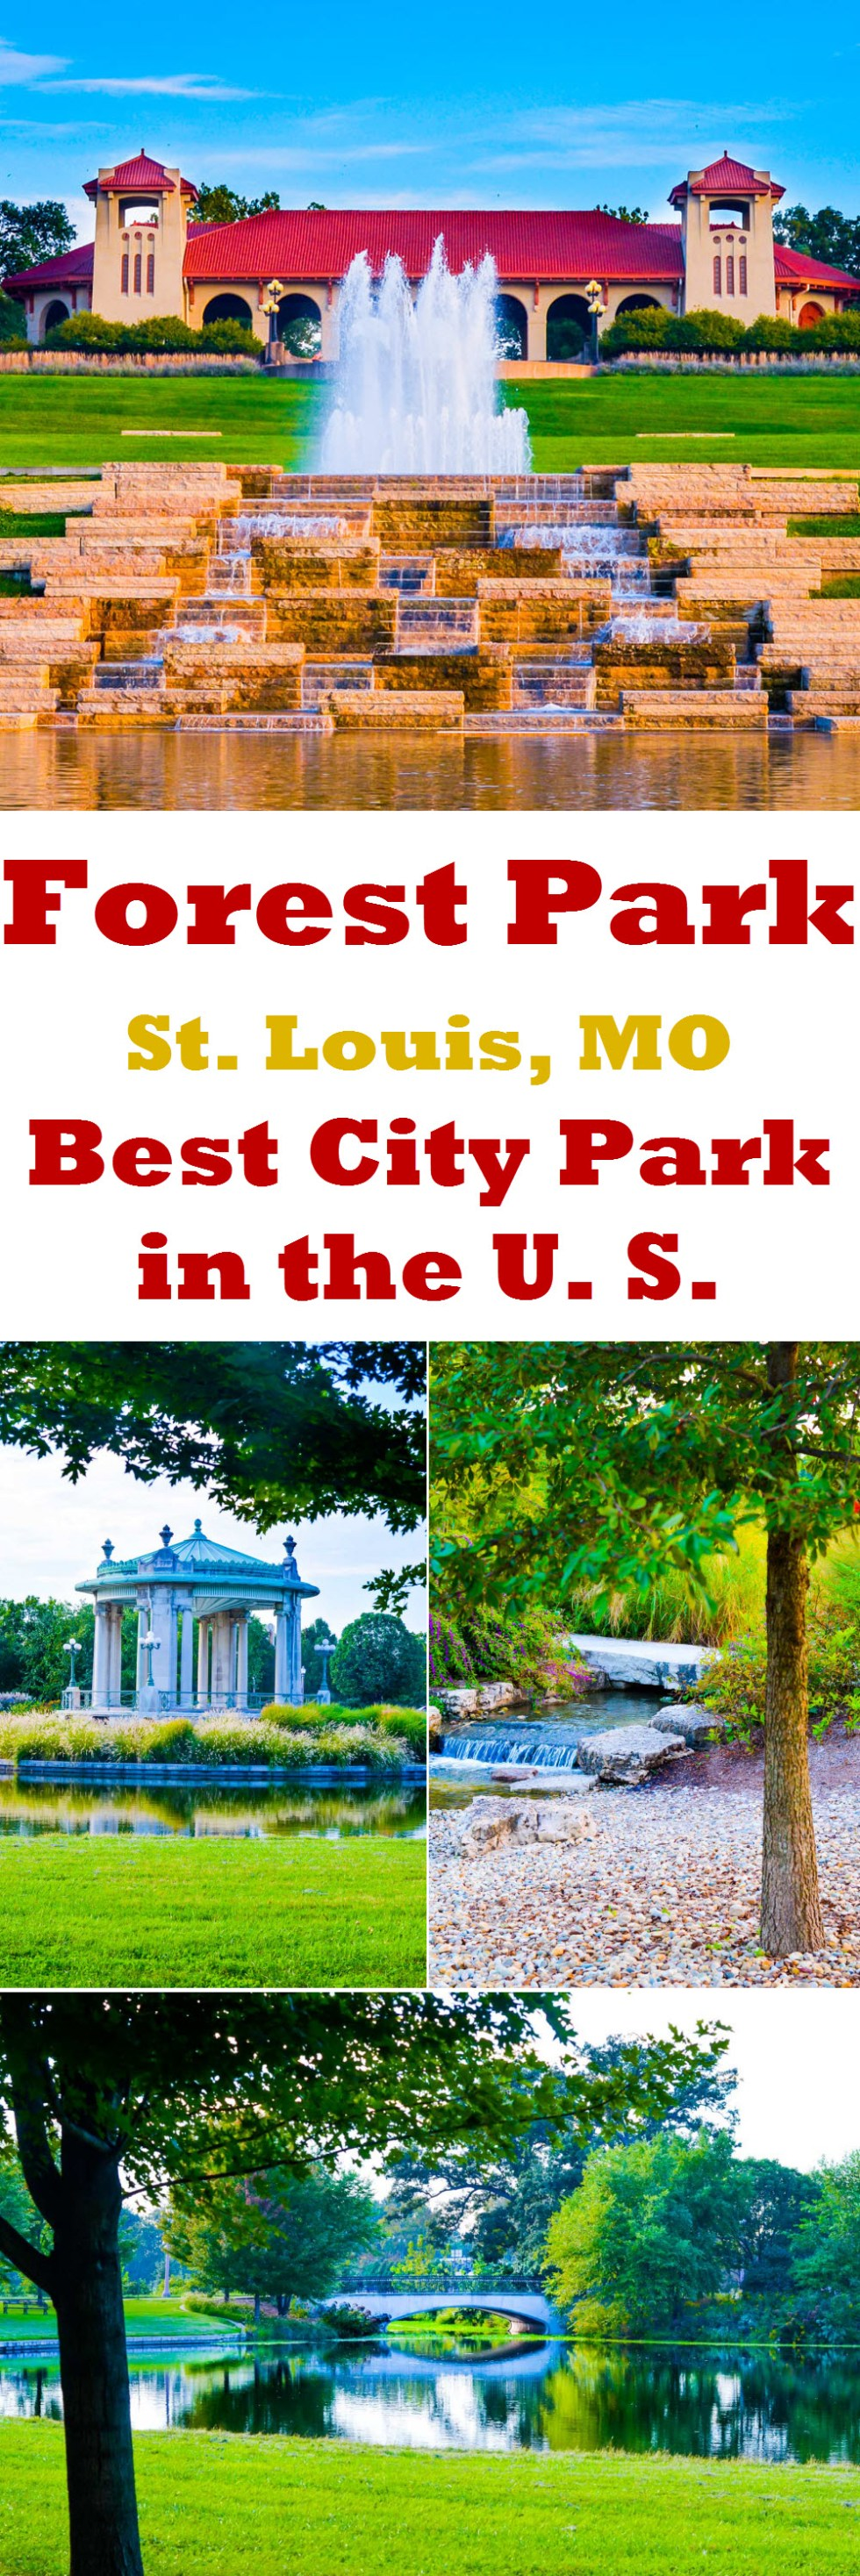 What to Do 2 Days in St. Louis Travel Guide - Forest Park. Best City Park in the US Photos!